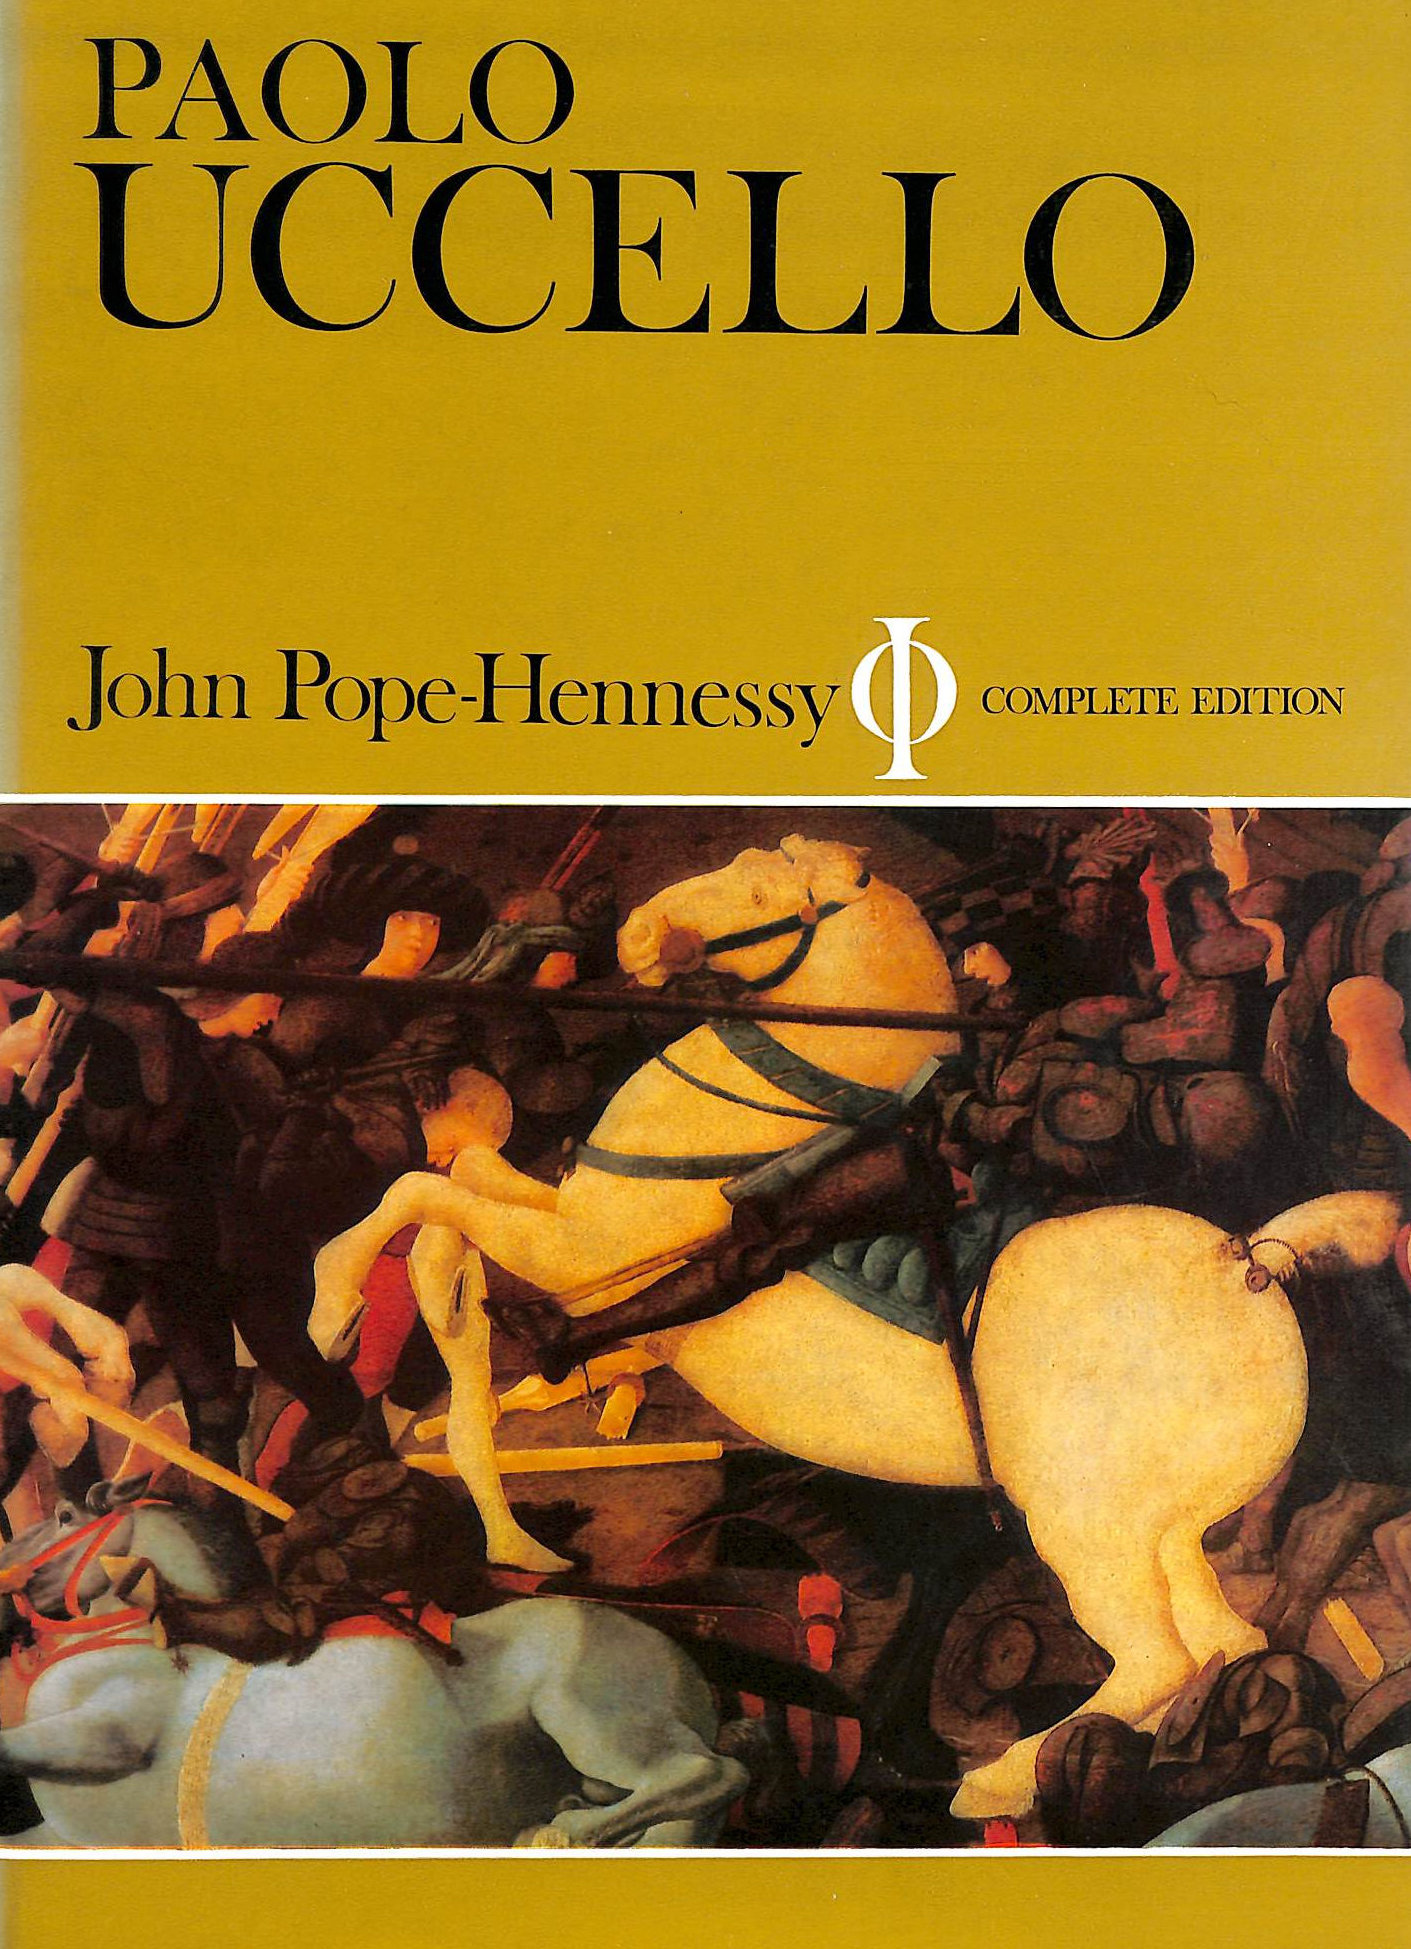 Image for Paolo Uccello